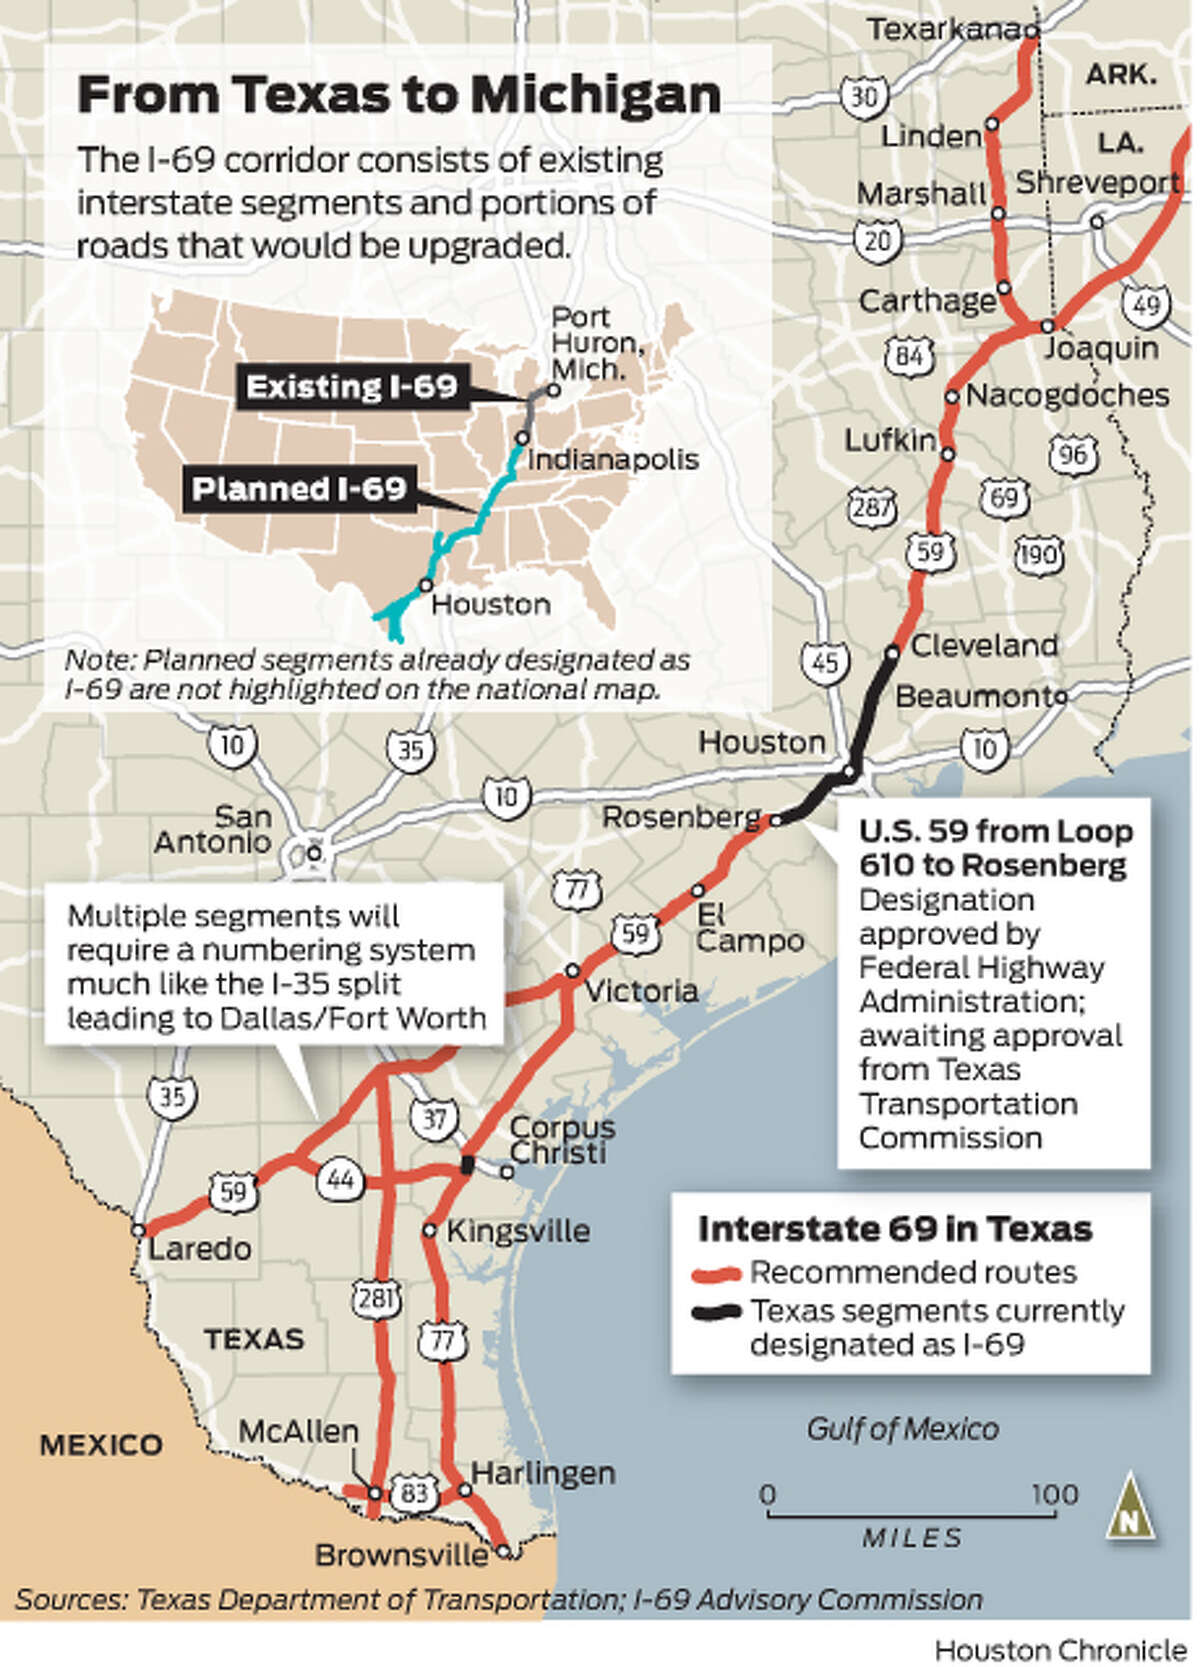 The I-69 corridor consists of existing interstate segments and portions of roads that would be upgraded.